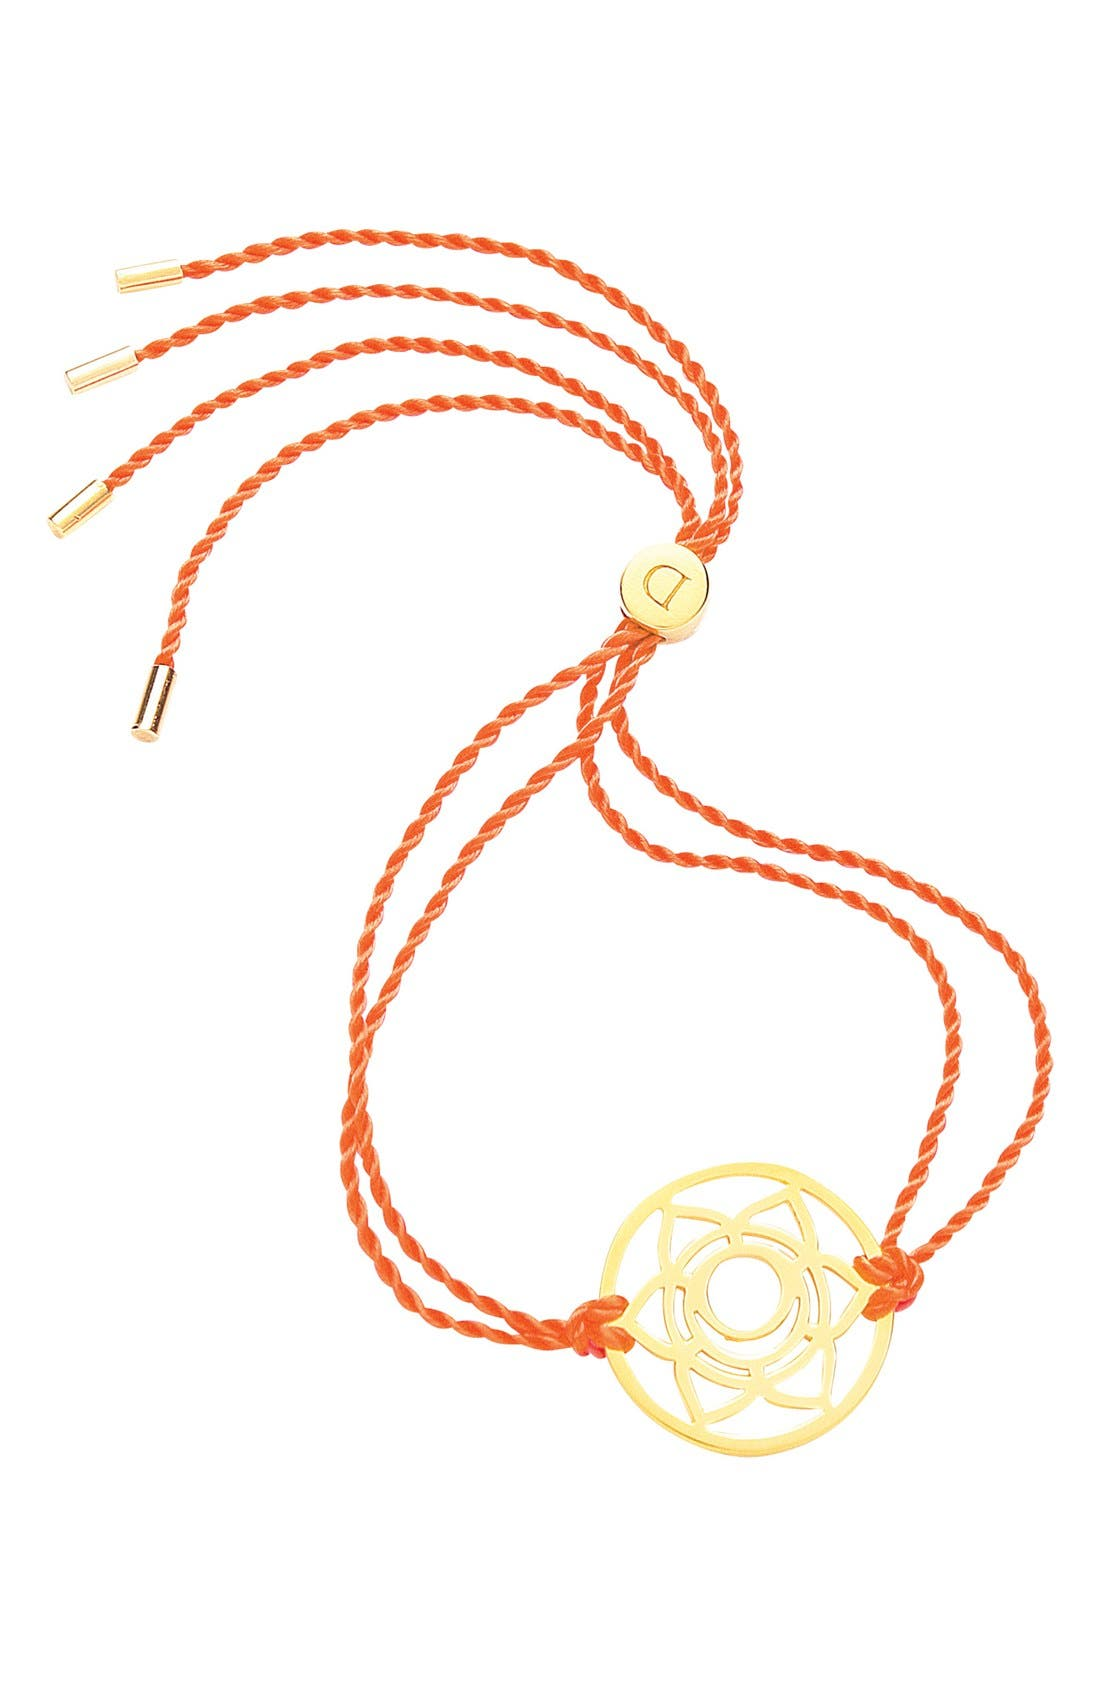 Alternate Image 1 Selected - Daisy London 'Sacral Chakra' Cord Bracelet